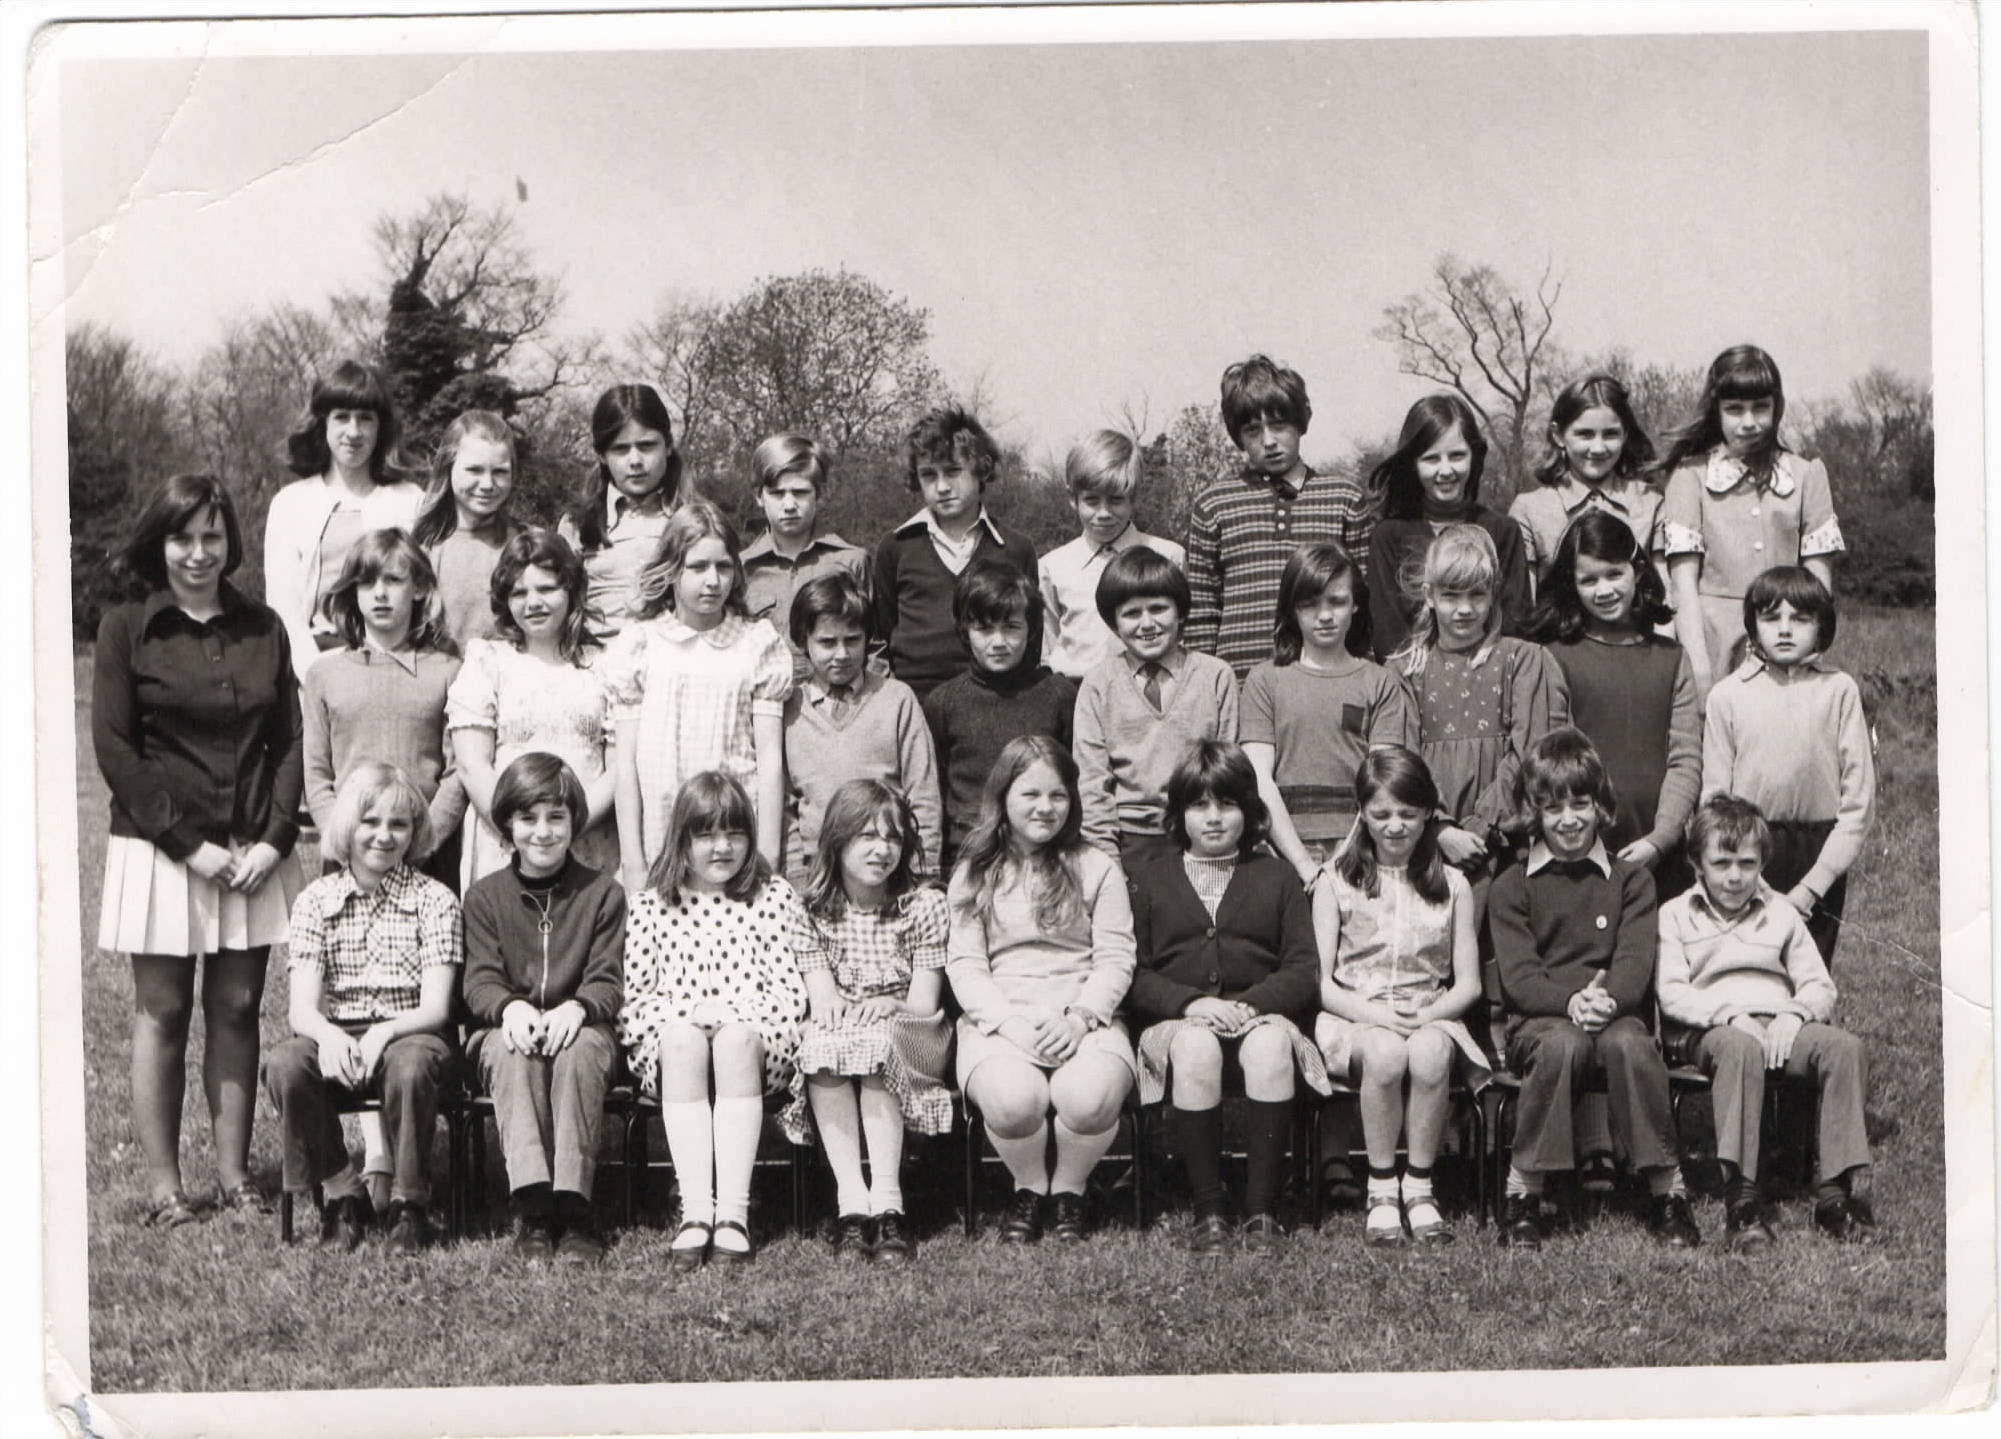 Mrs Gale's class, Chrishall School 1975